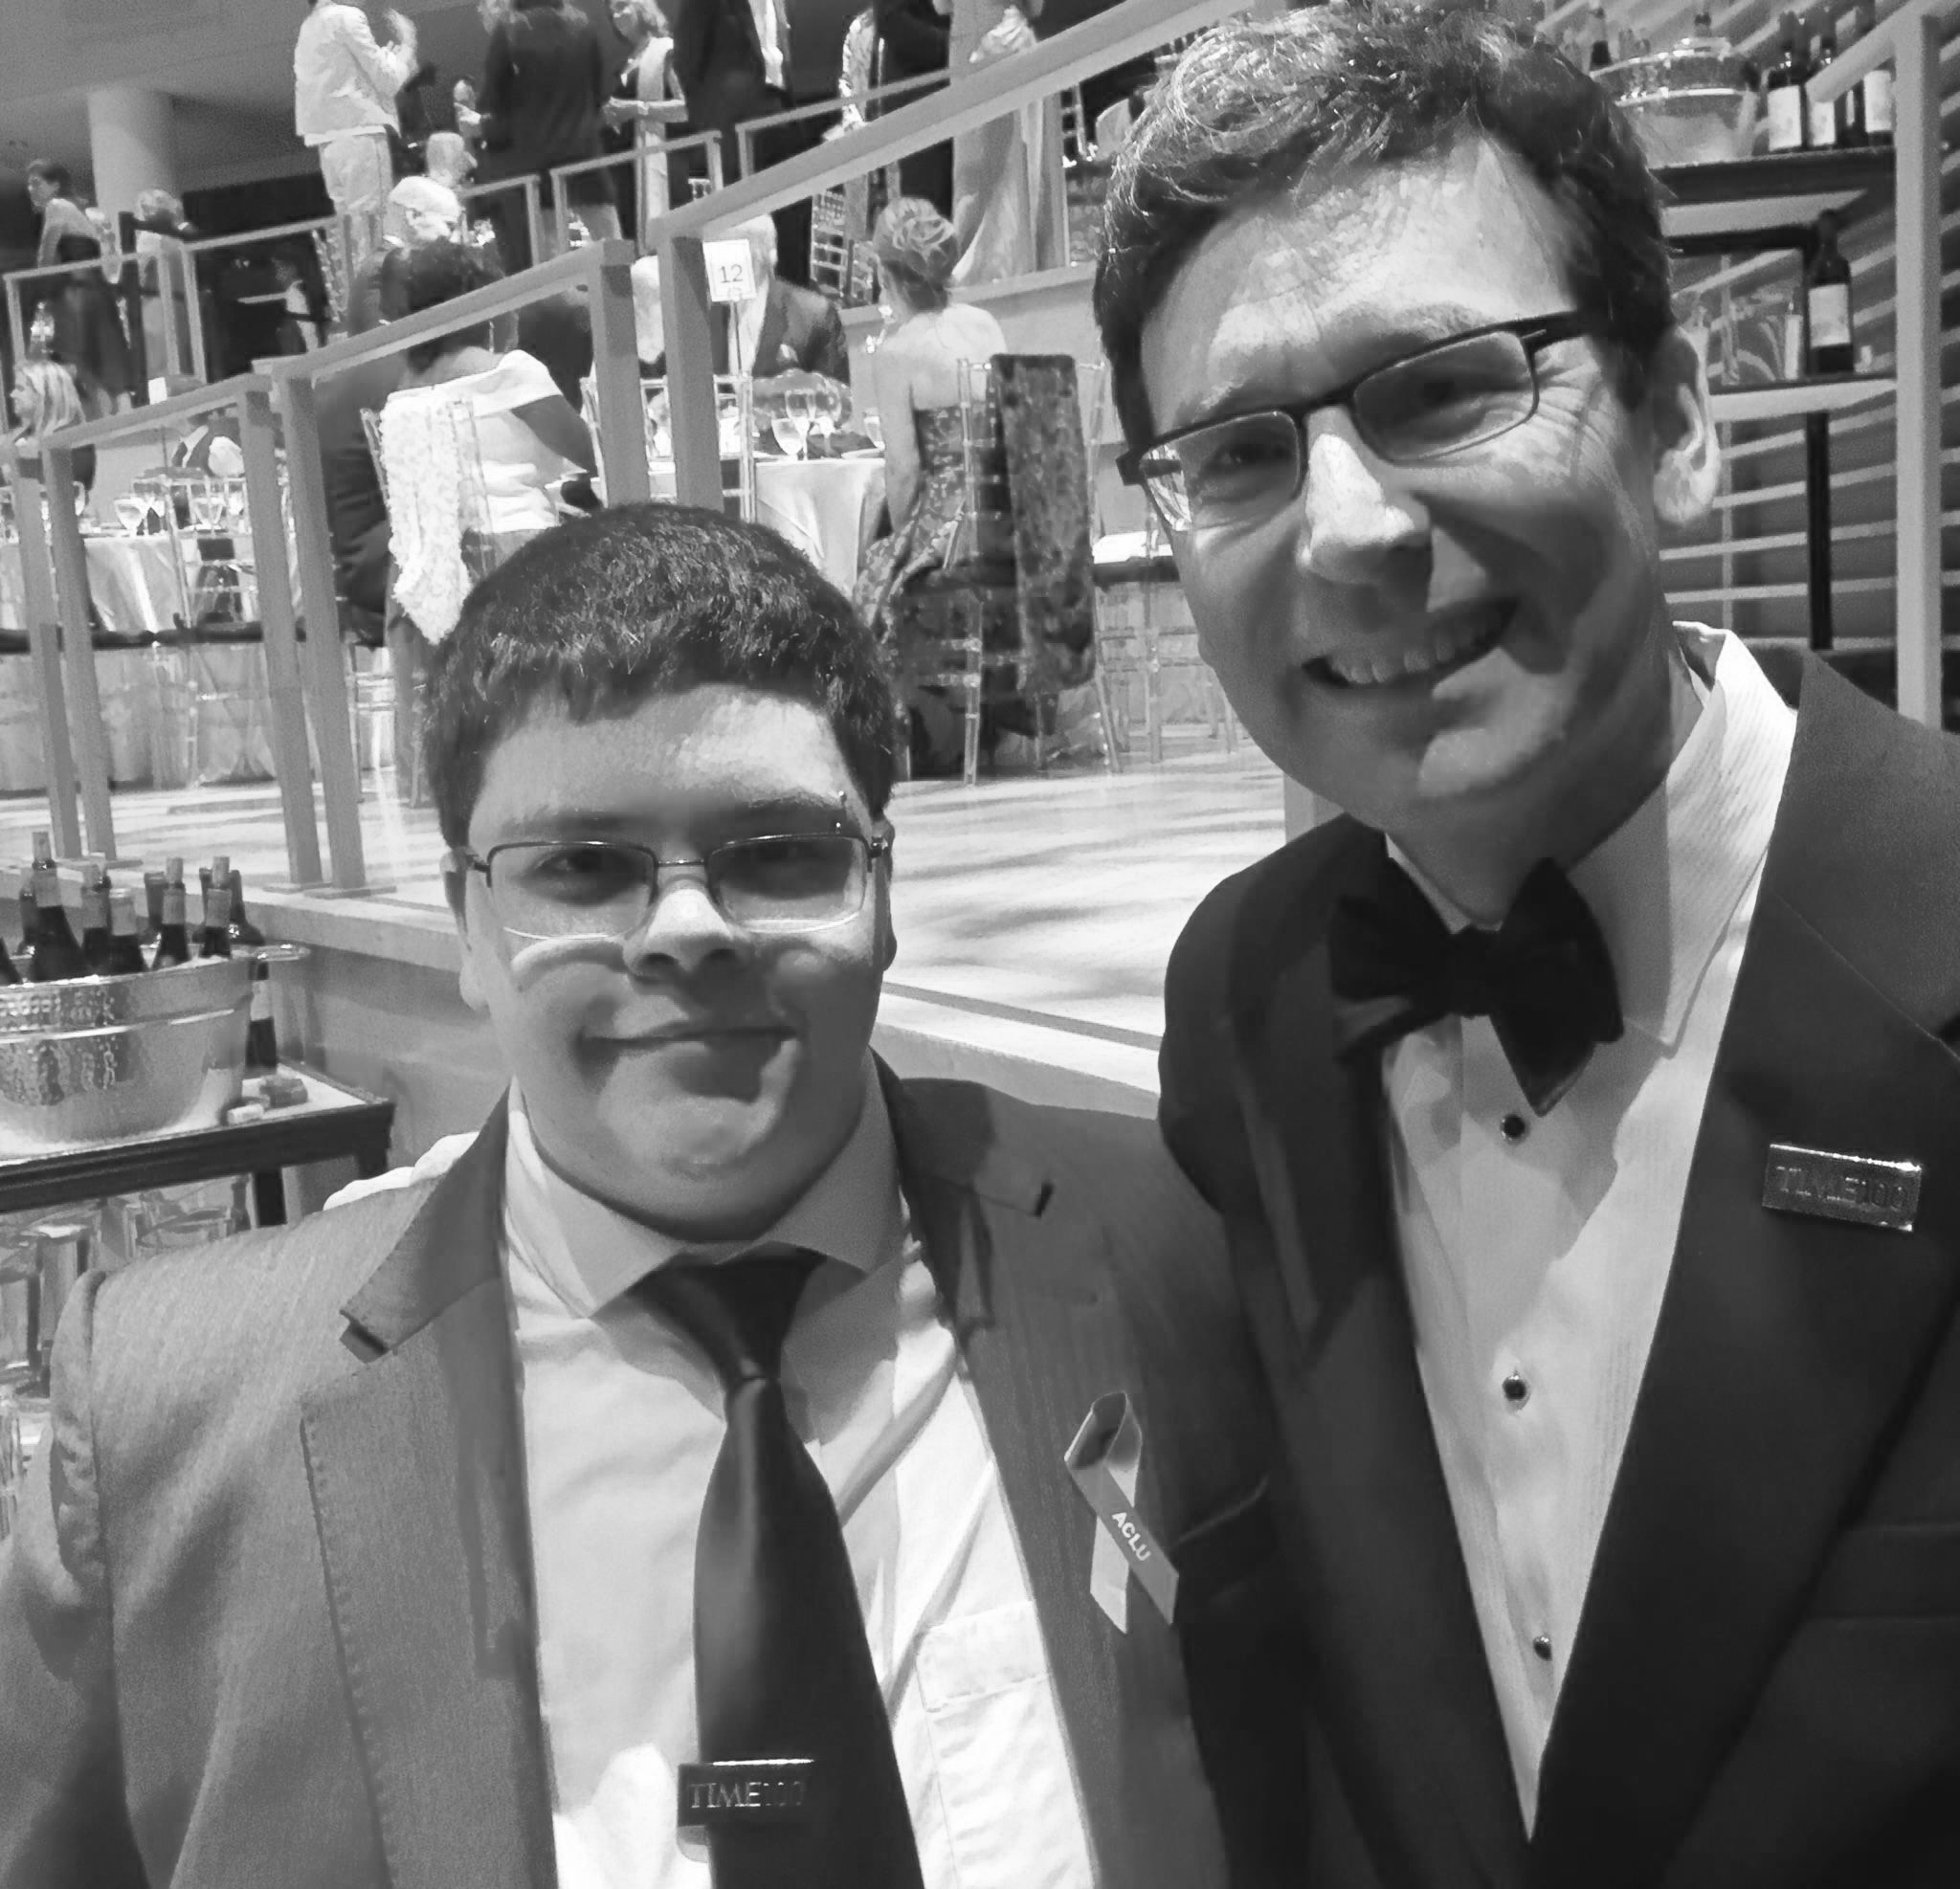 Attorney General Bob Ferguson and Gavin Grimm at the 2017 TIME 100 Gala.